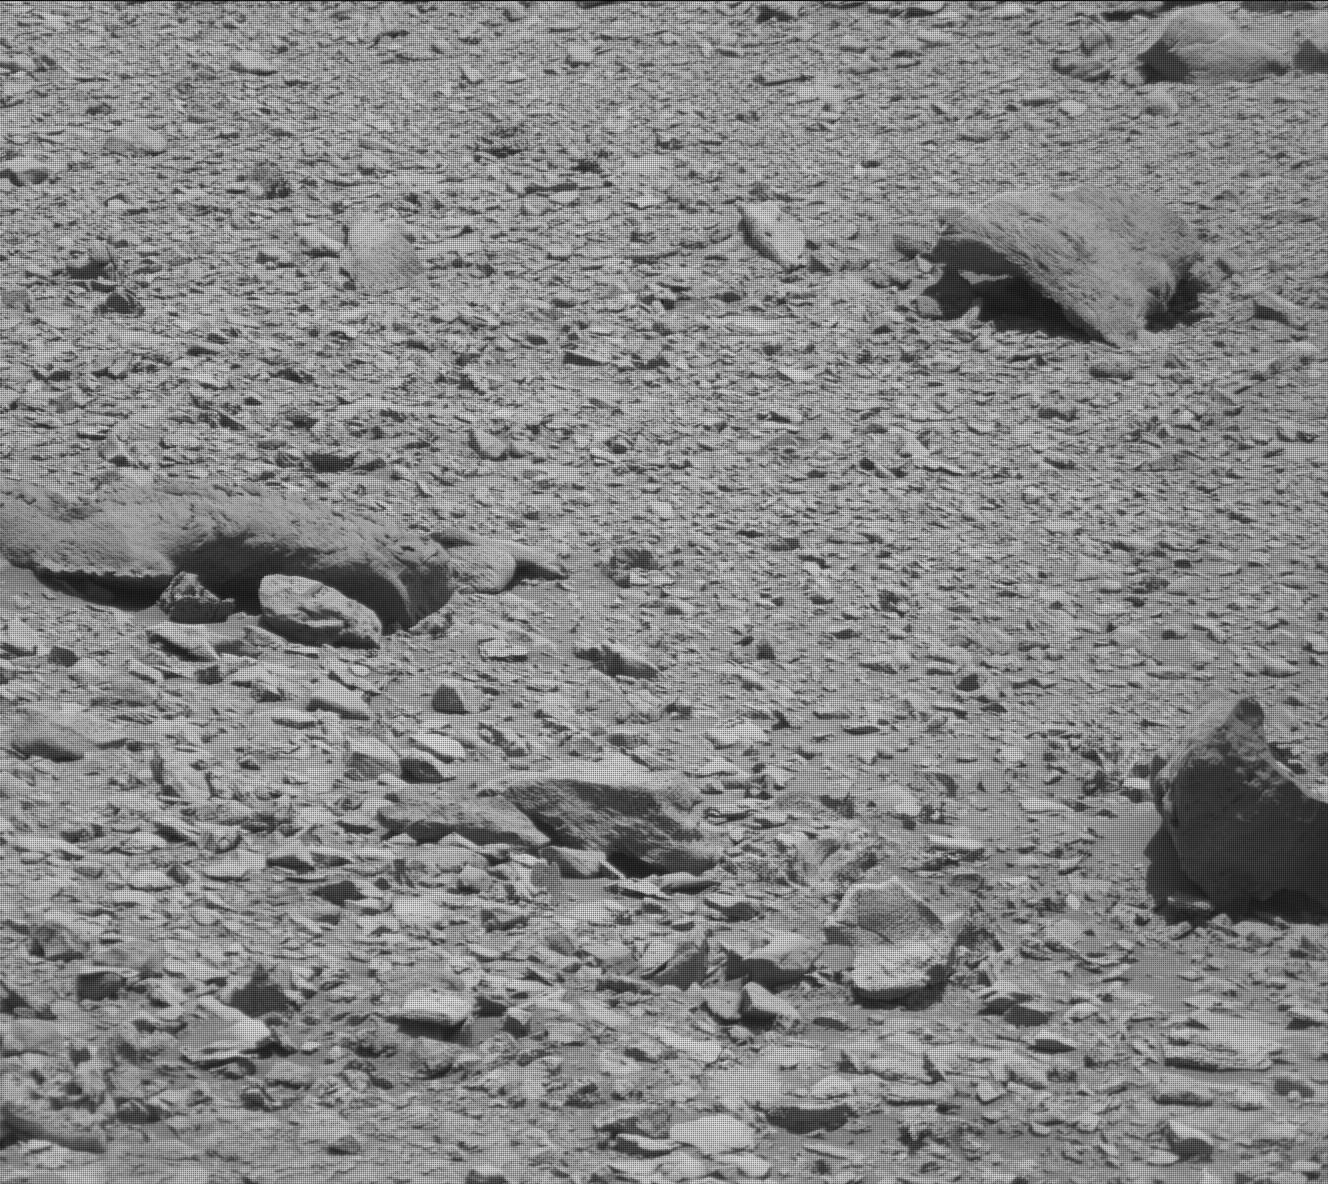 Nasa's Mars rover Curiosity acquired this image using its Mast Camera (Mastcam) on Sol 2635